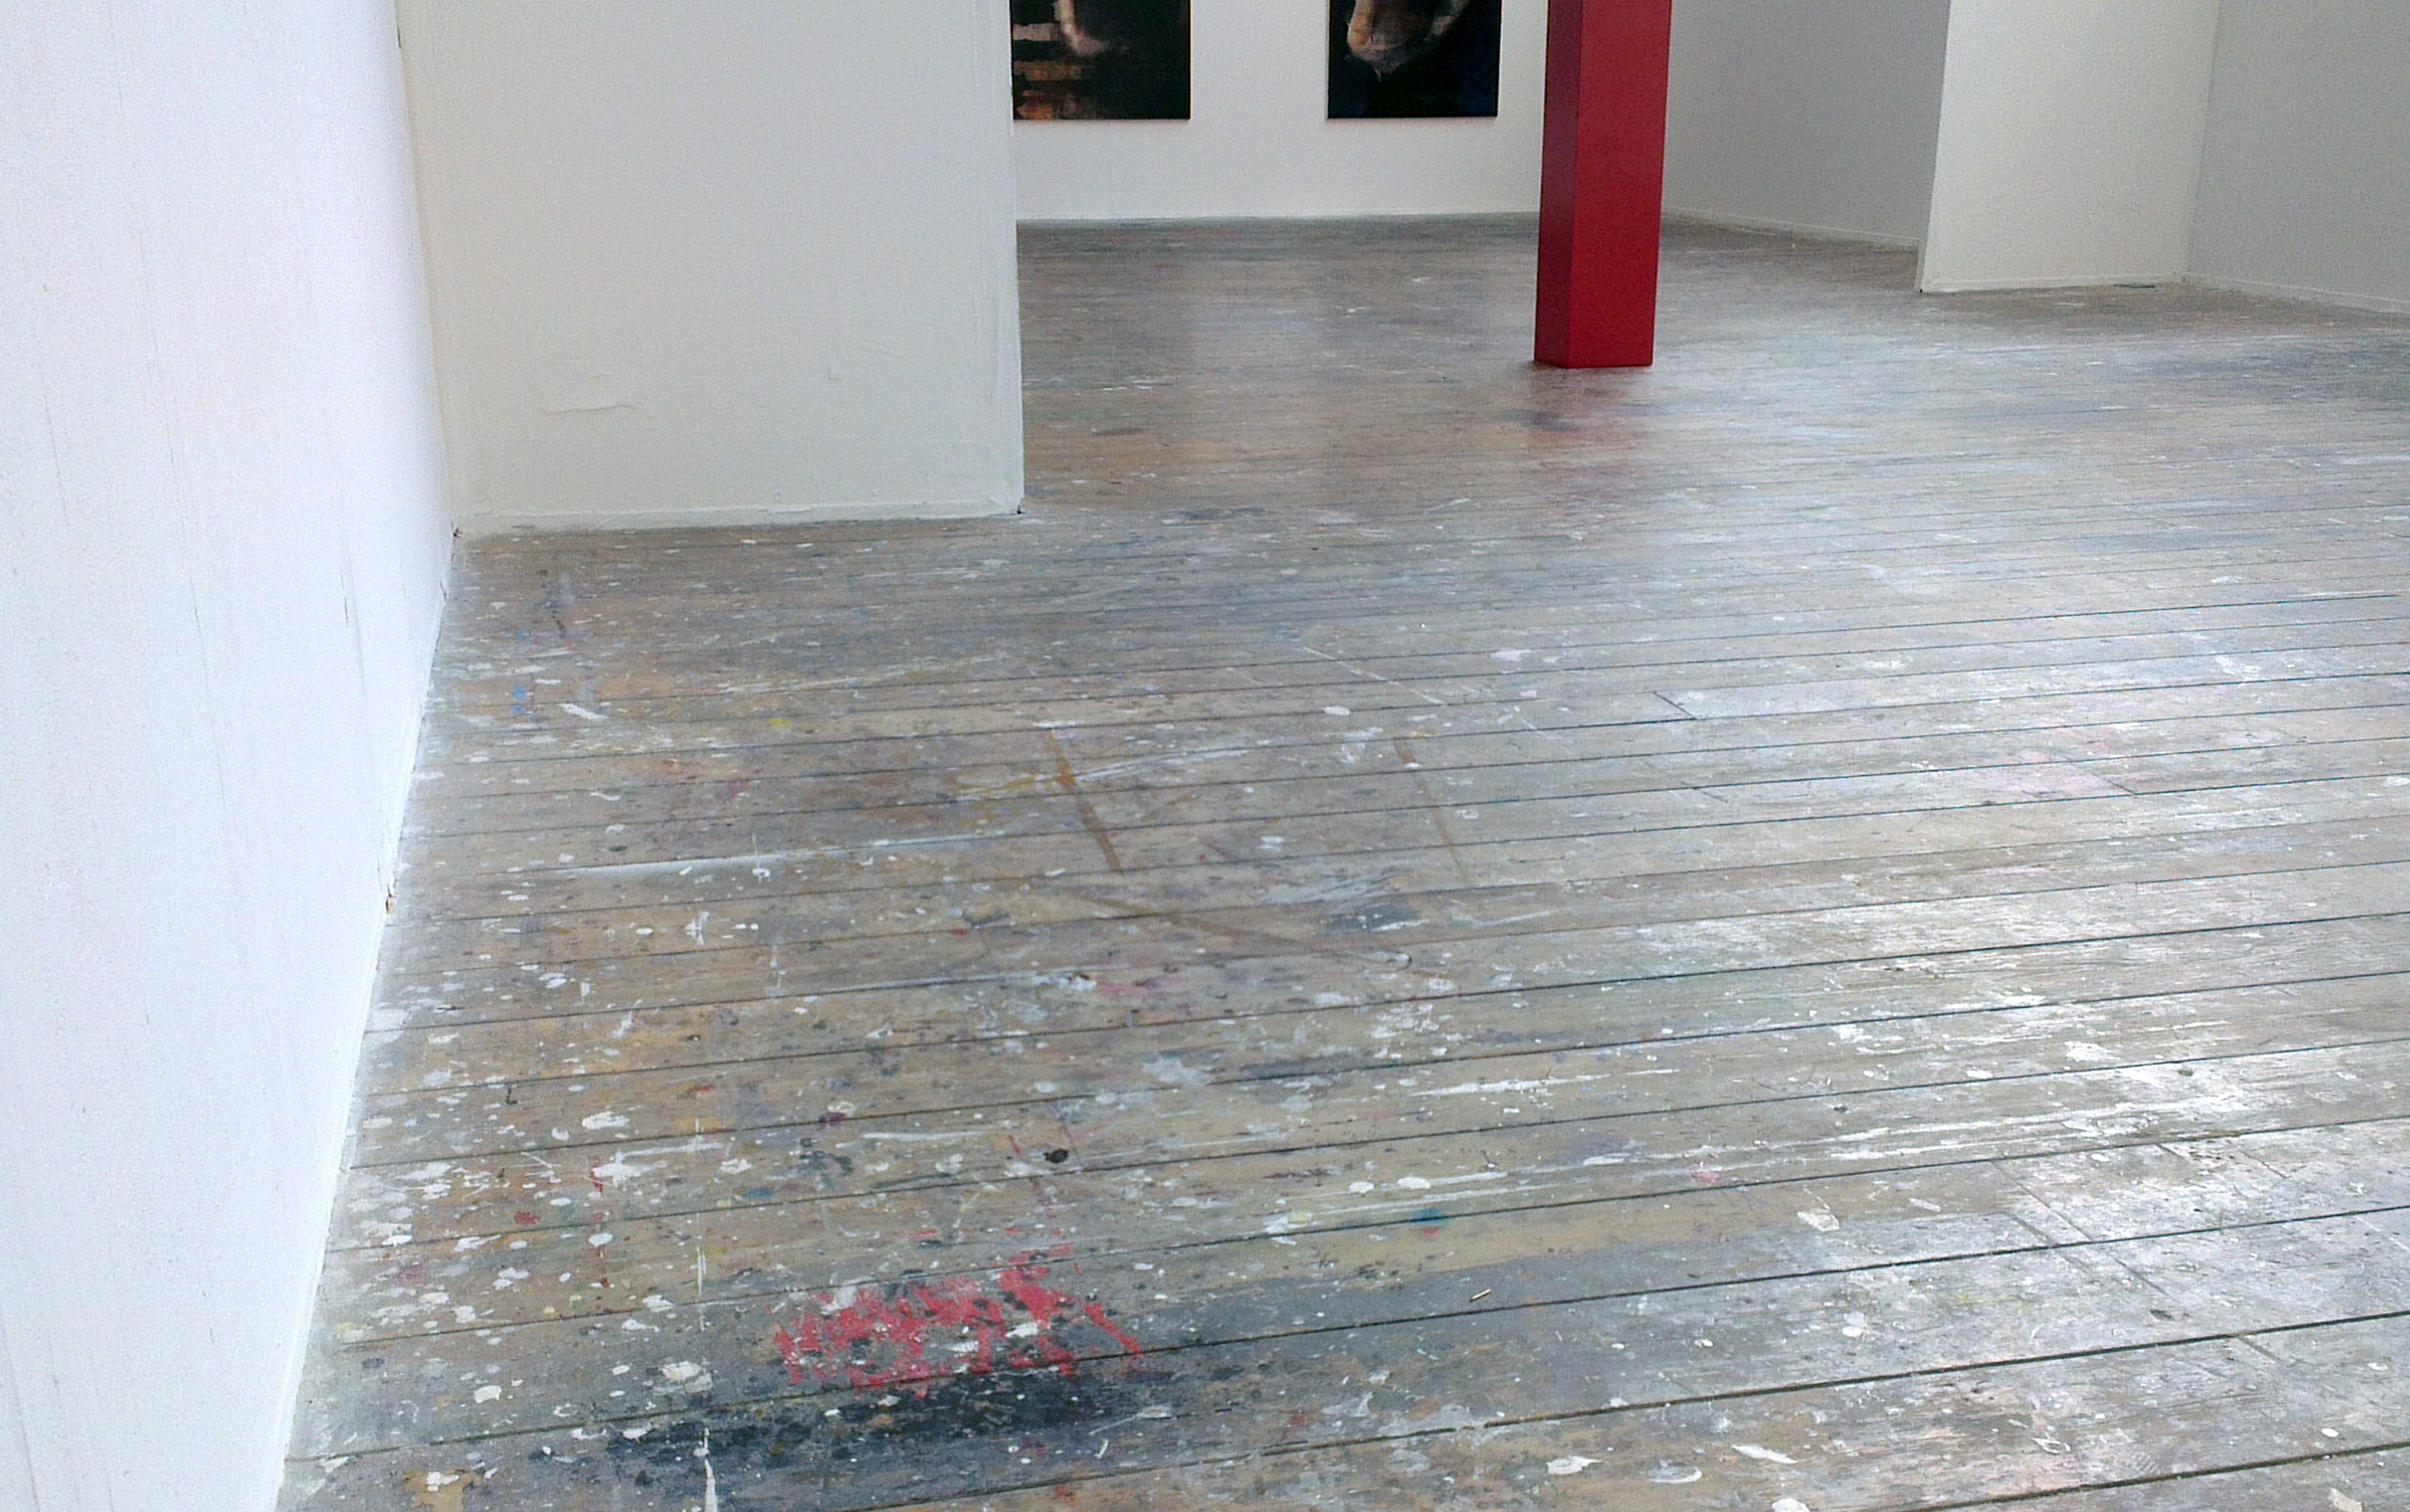 Installation View F:01